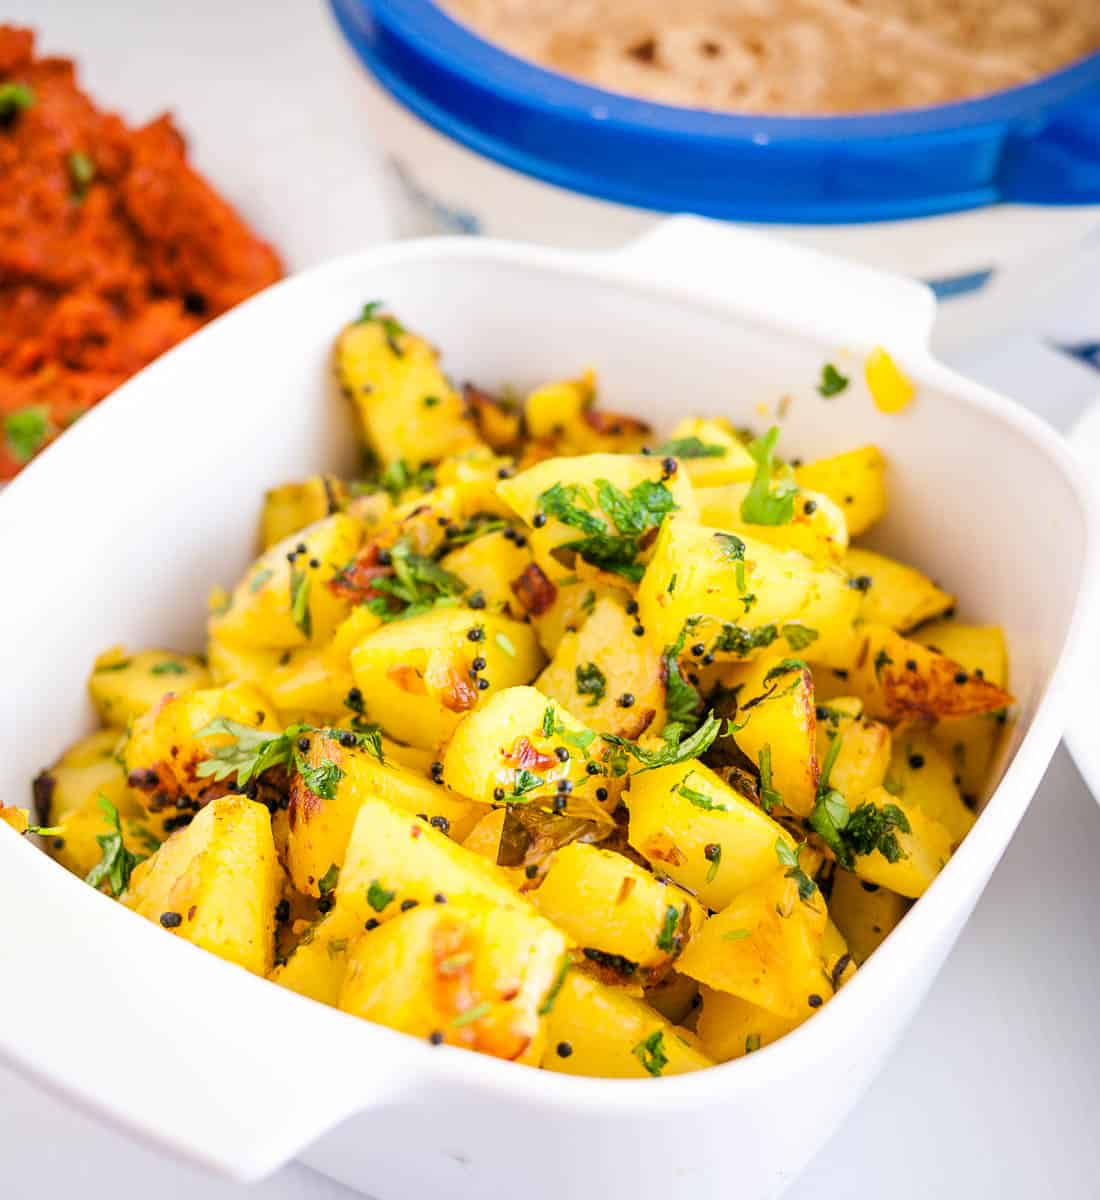 A dish with spiced potatoes made Indian style.